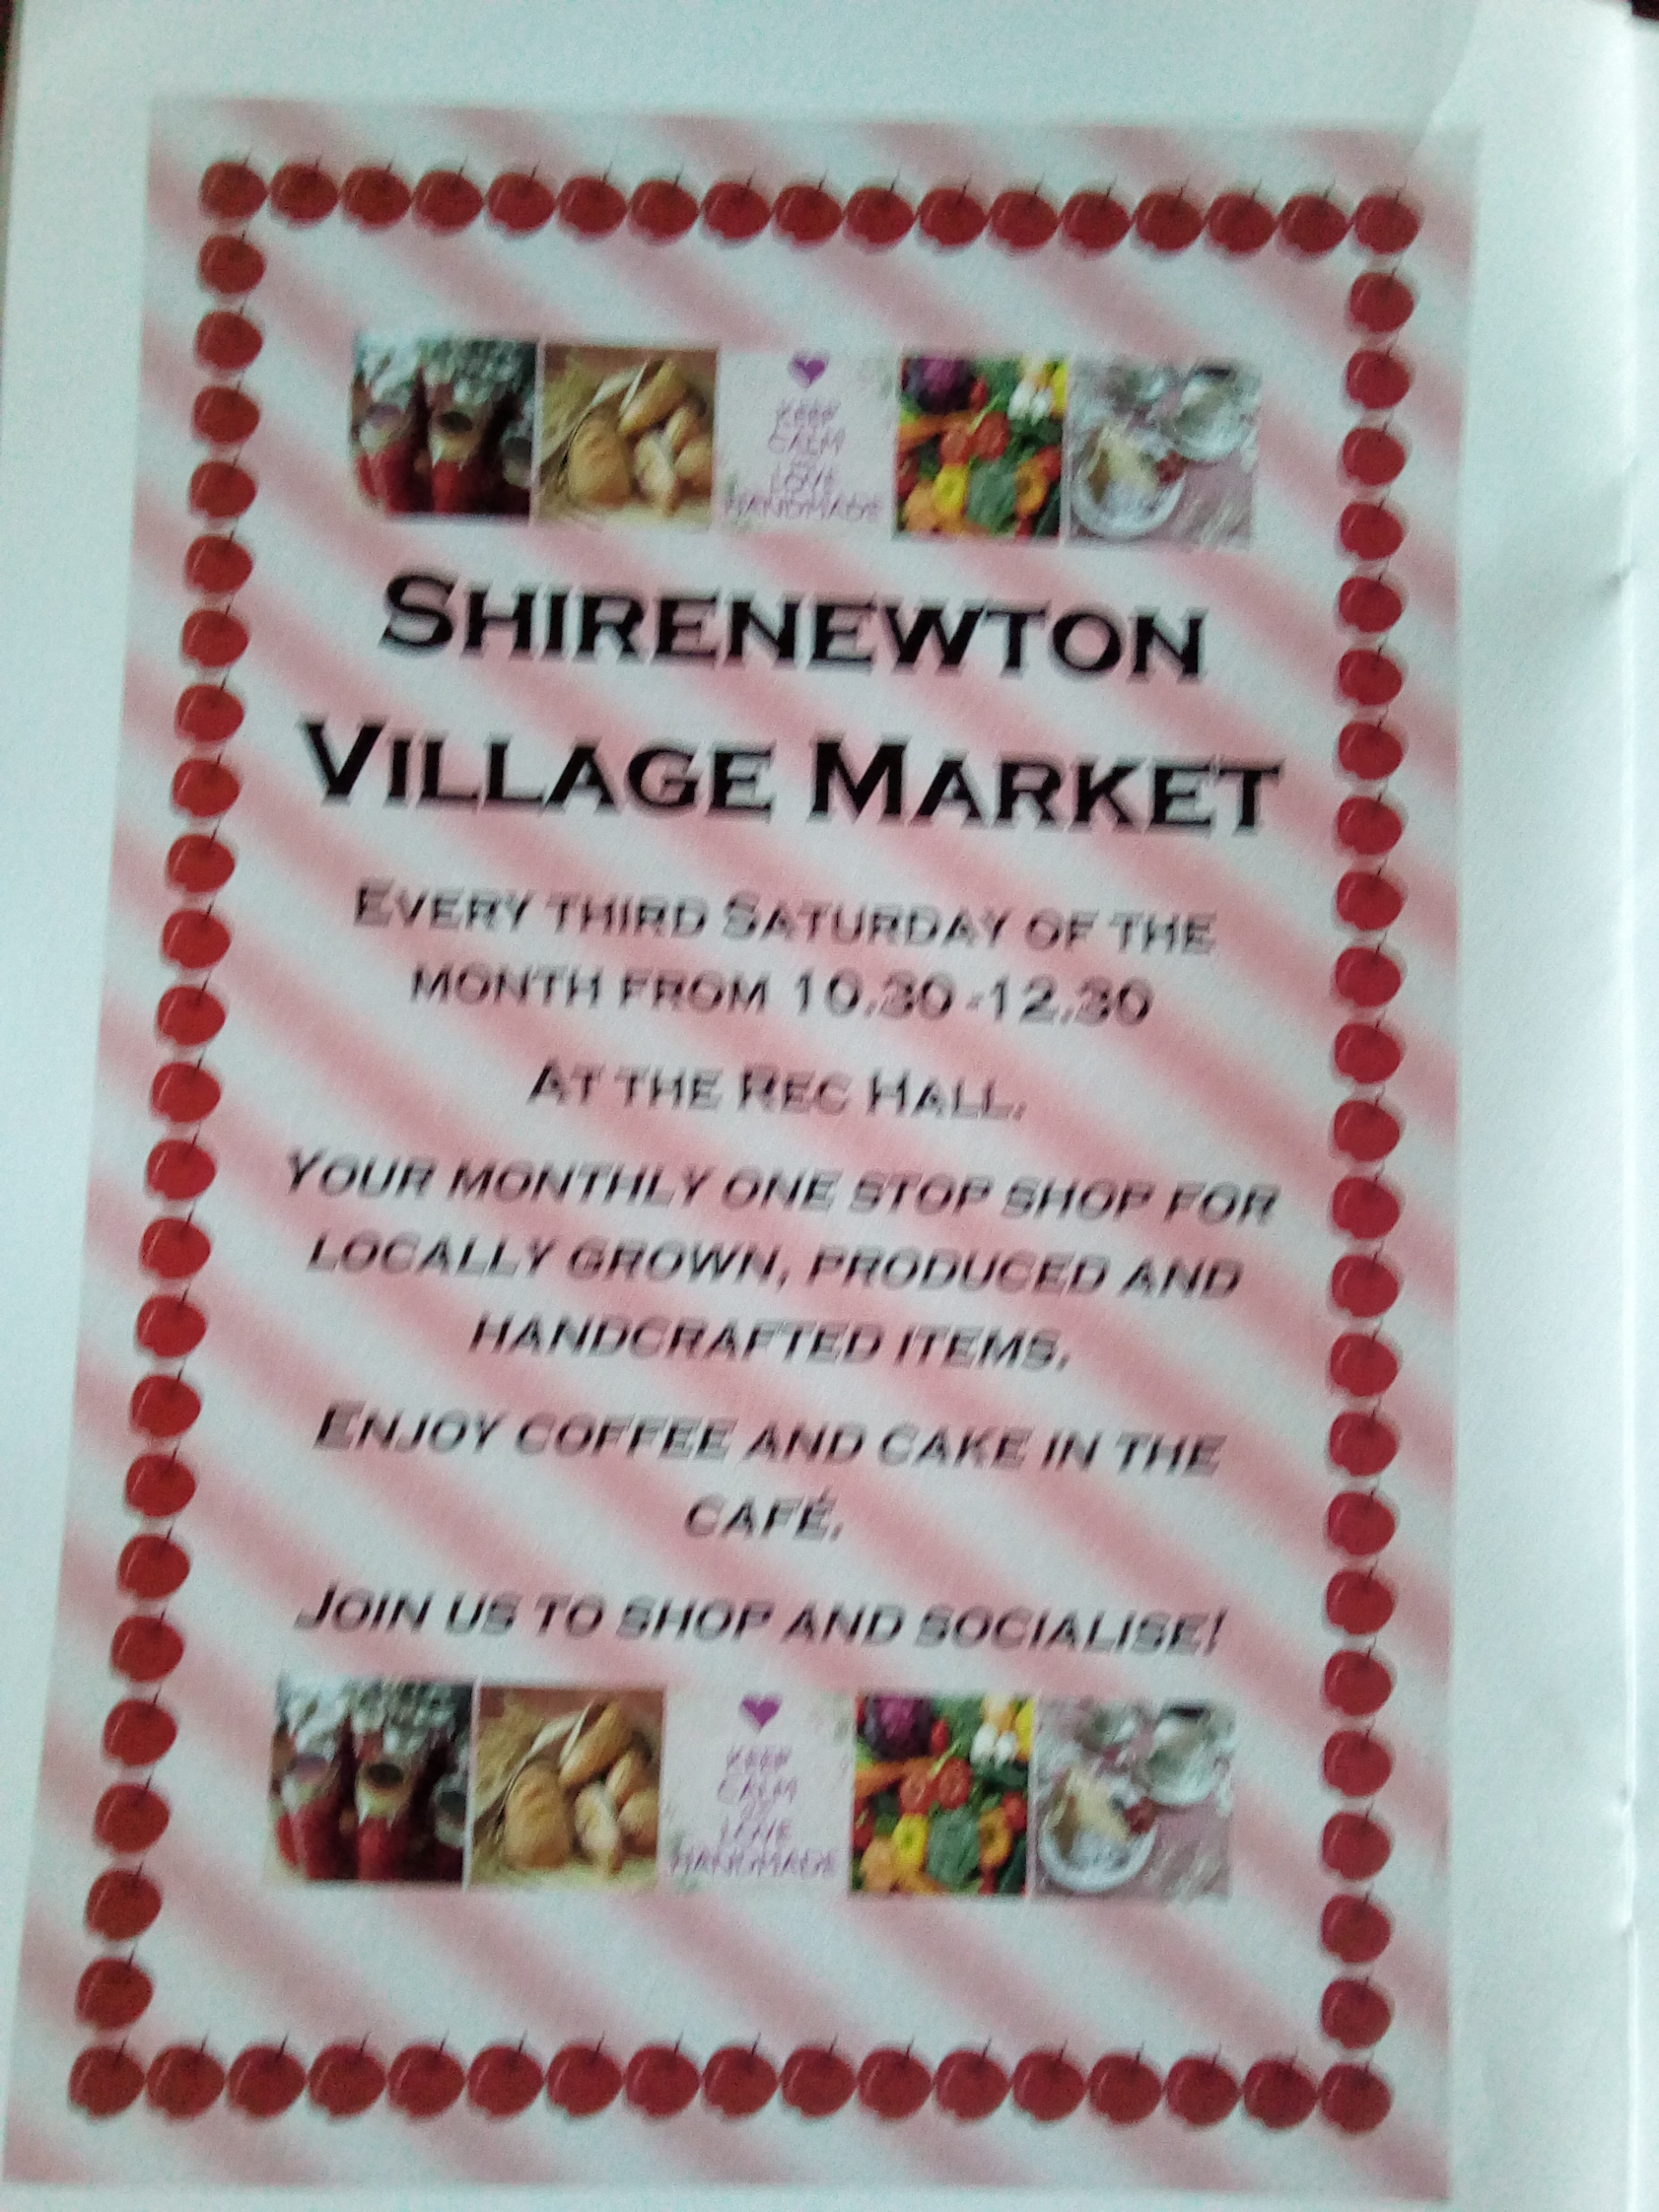 Shirenewton Village Market